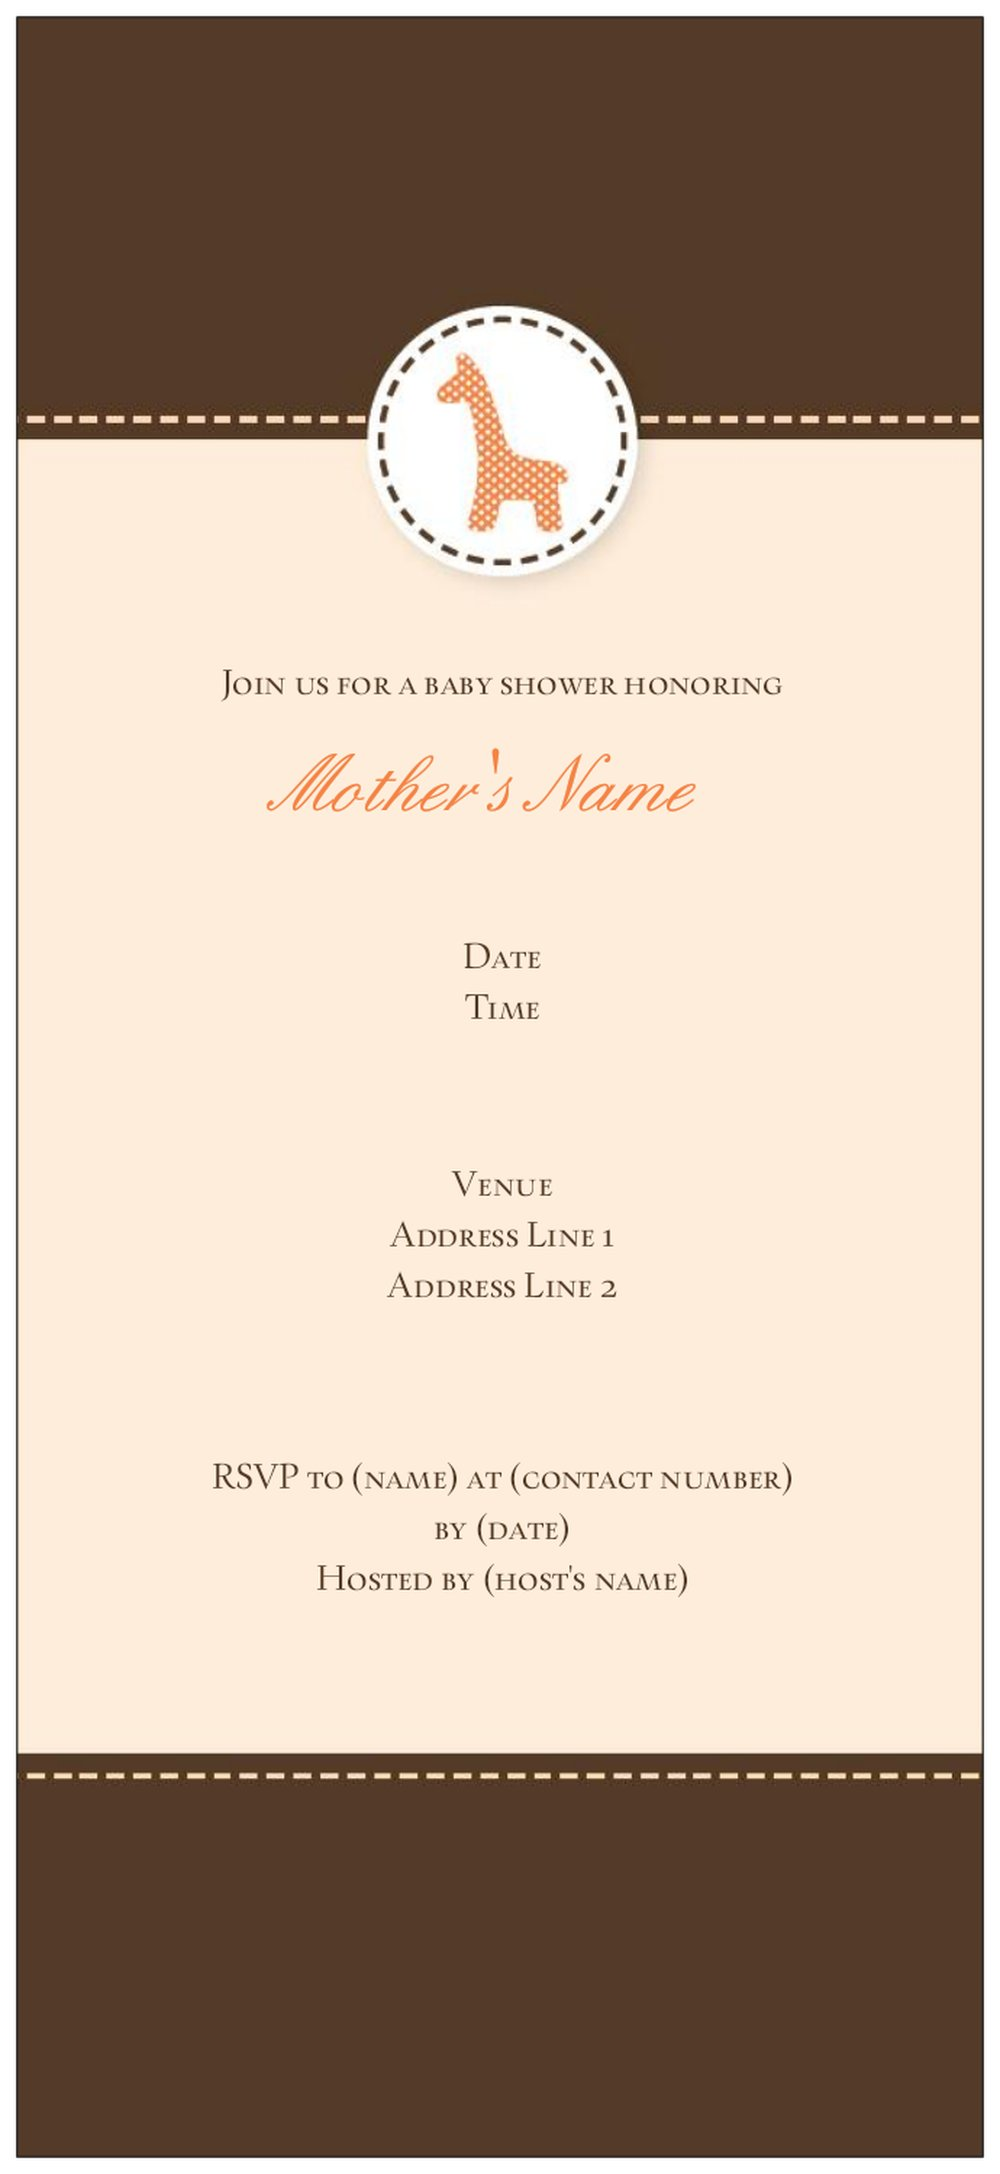 Vistaprint Baby Shower Invitations could be nice ideas for your invitation template